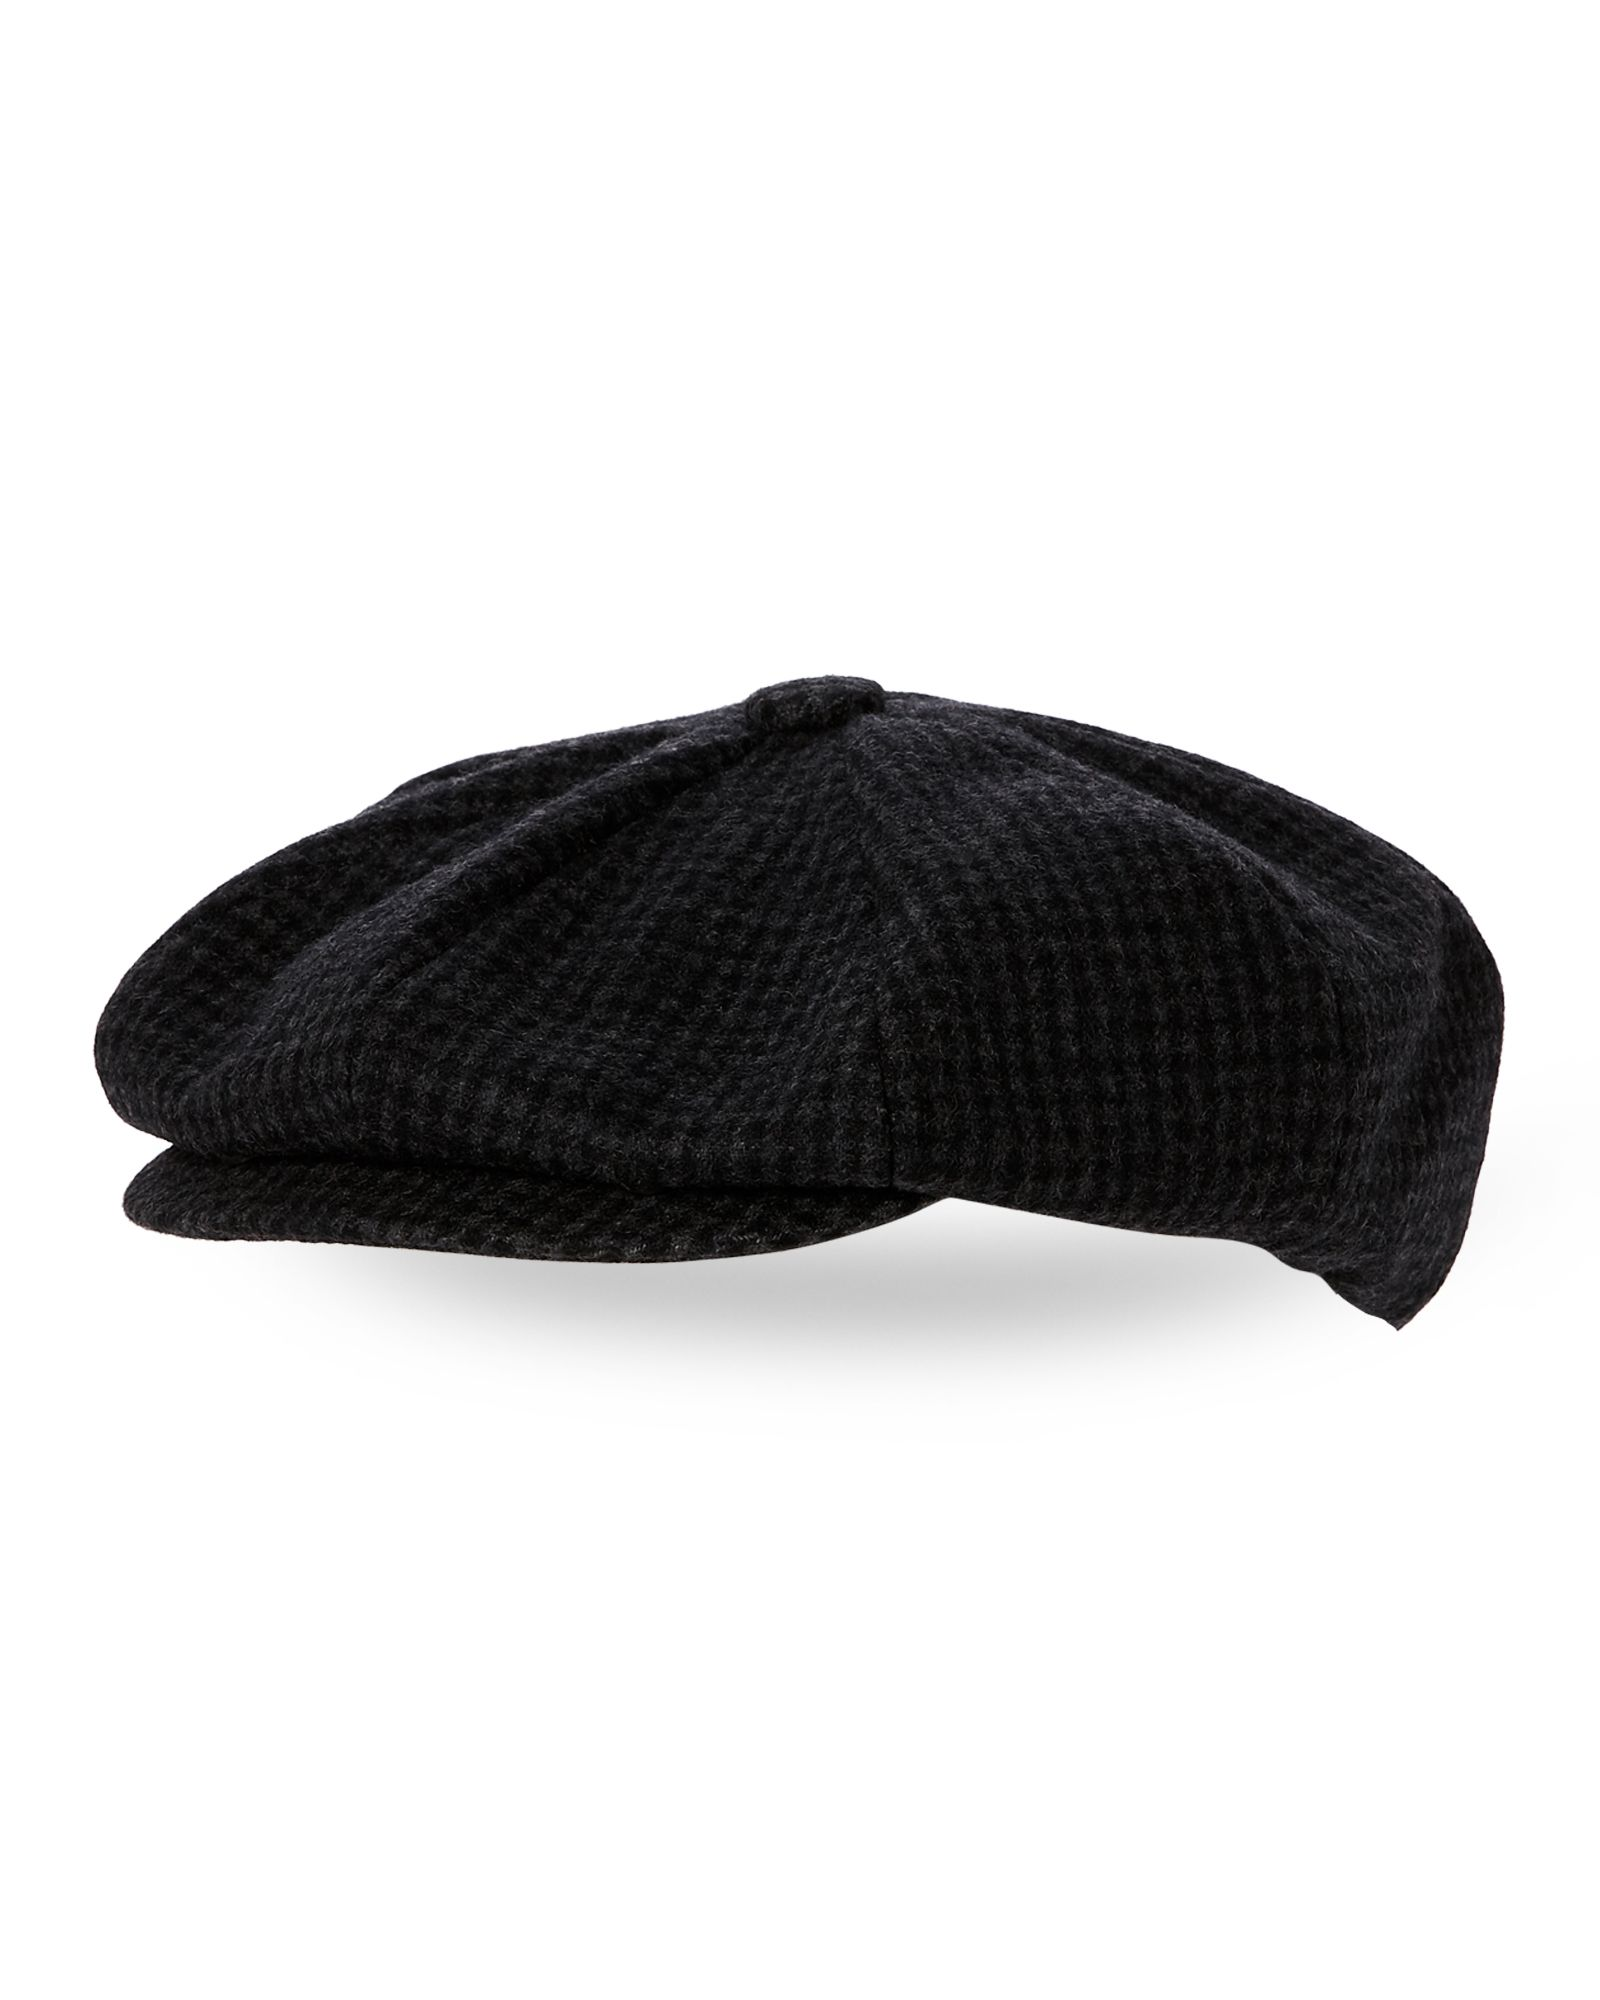 Country Gentleman Woolen Felt Newsboy Cap | *Apparel & Accessories ...